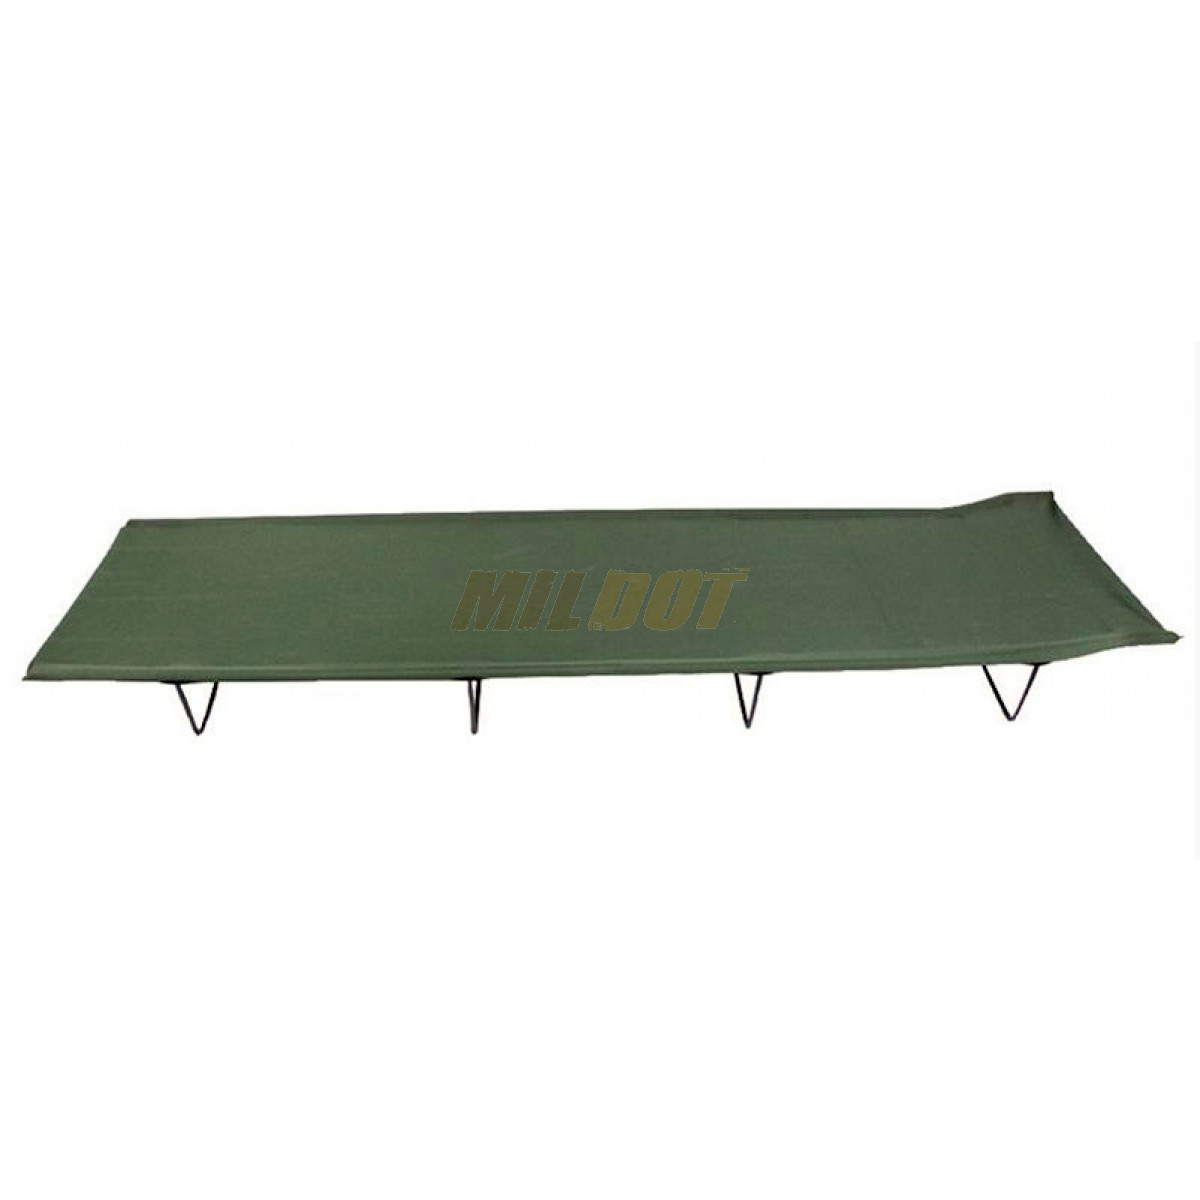 Cama plegable MILTEC 180 x 60 cm - photo#50